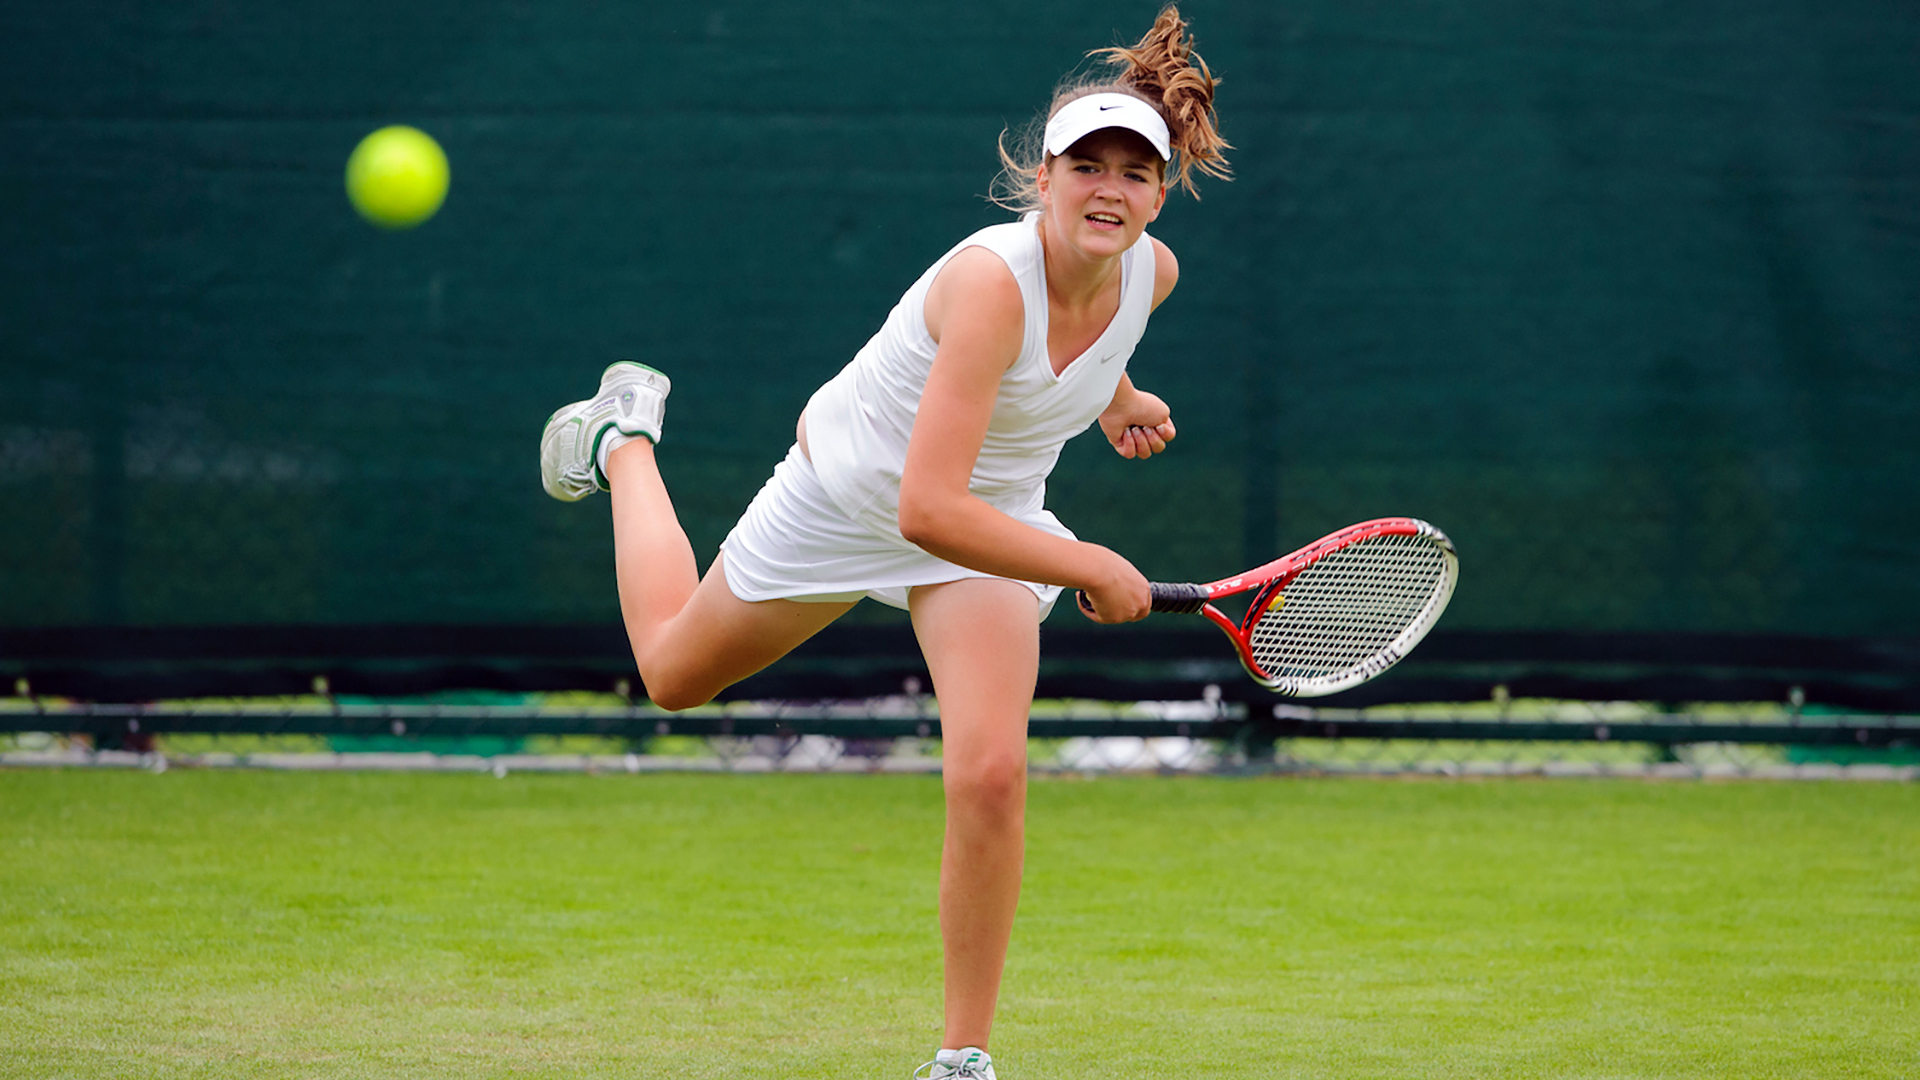 Rock Tennis Adds Lois Page For 2018 19 Slippery Rock University